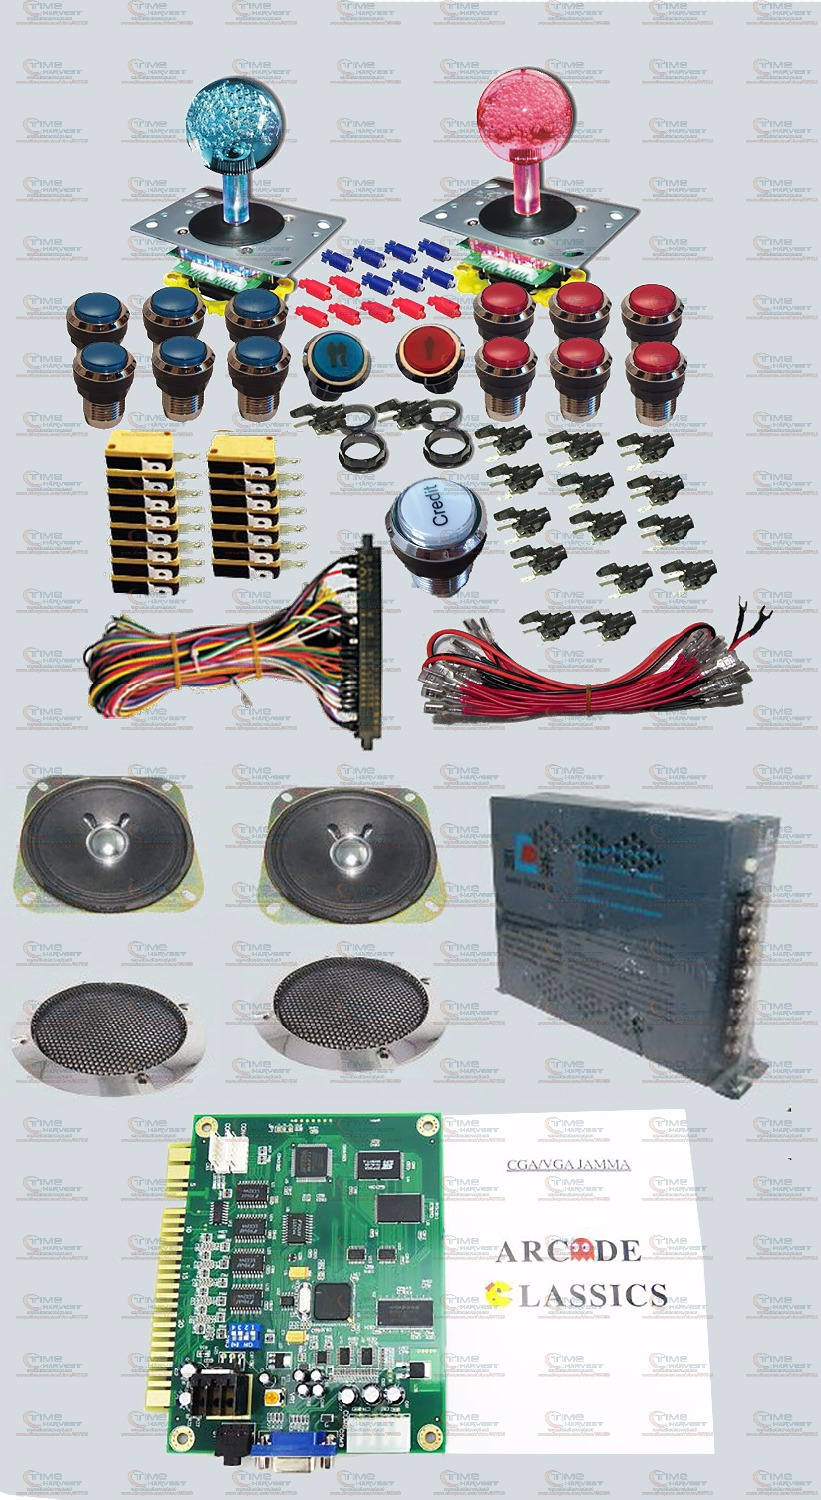 Arcade parts Bundles kit Pandora's Box 4S + plus  illuminated Joystick Silver illuminated buttons Jamma Harness Power supply LED arcade parts bundles kit with 60 in 1 board power supply joystick push button microswitch harness glass clips coin door camlock